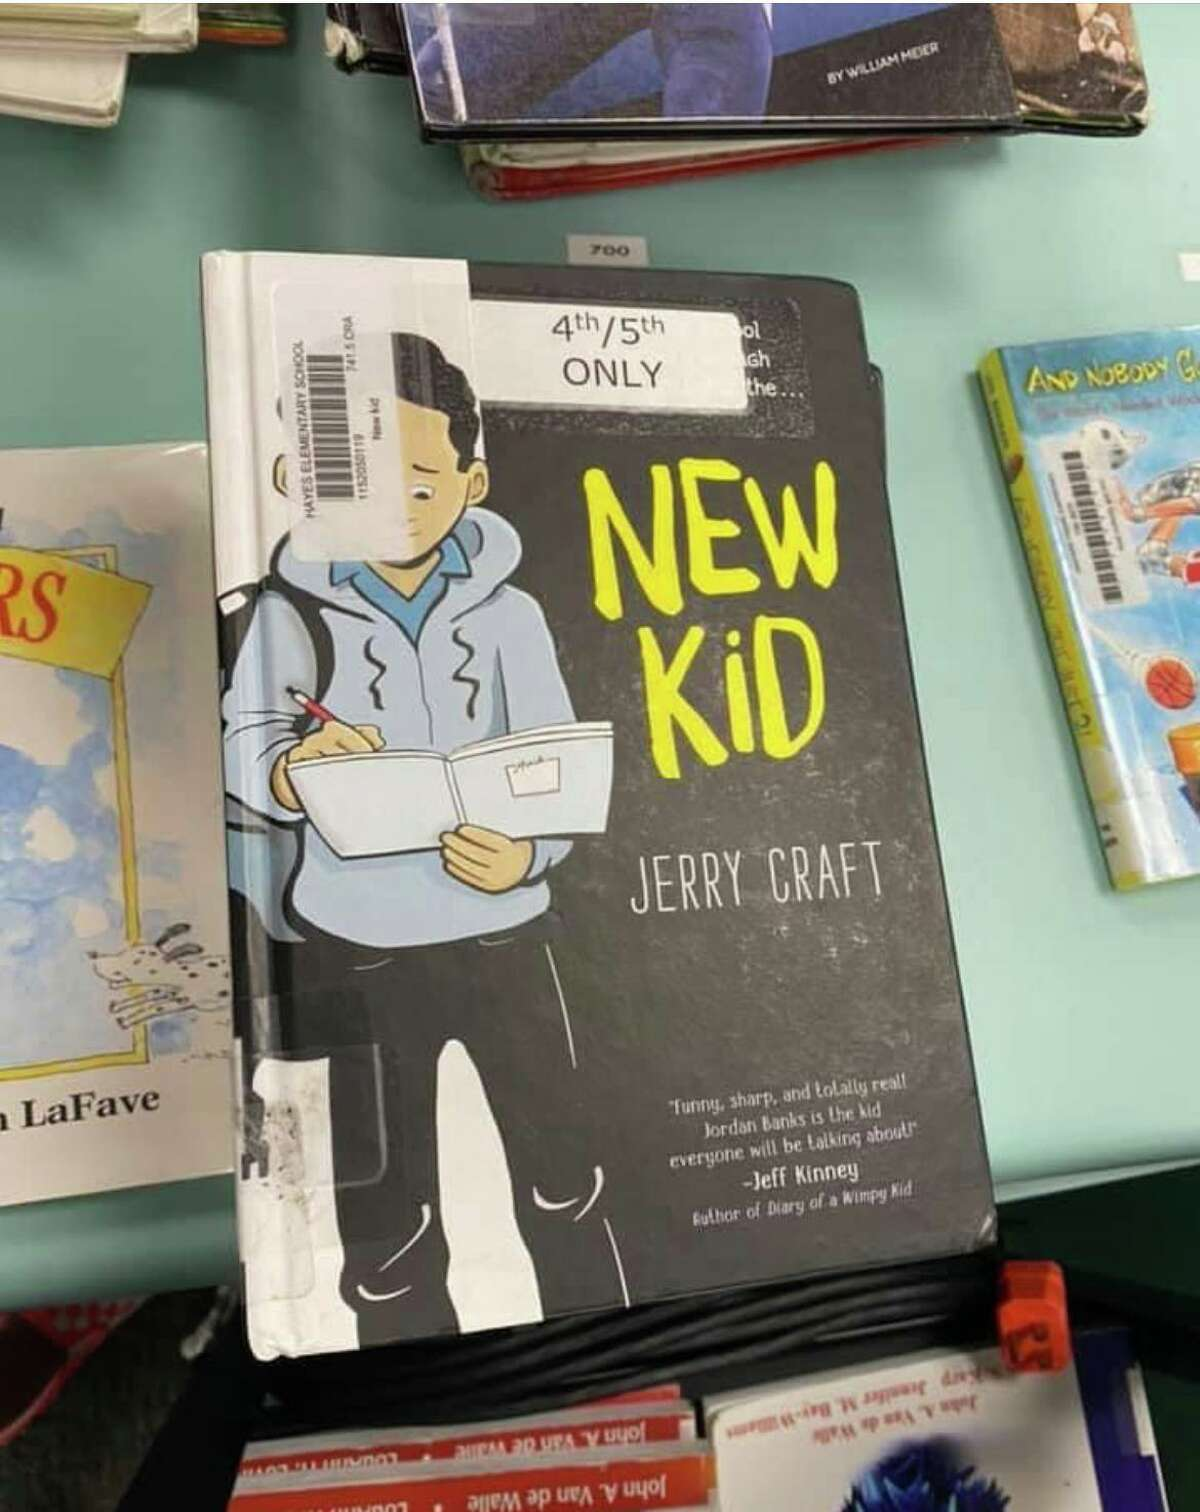 Jerry Craft's graphic novels are back on Katy ISD library shelves after a review committee found the claims against them baseless.